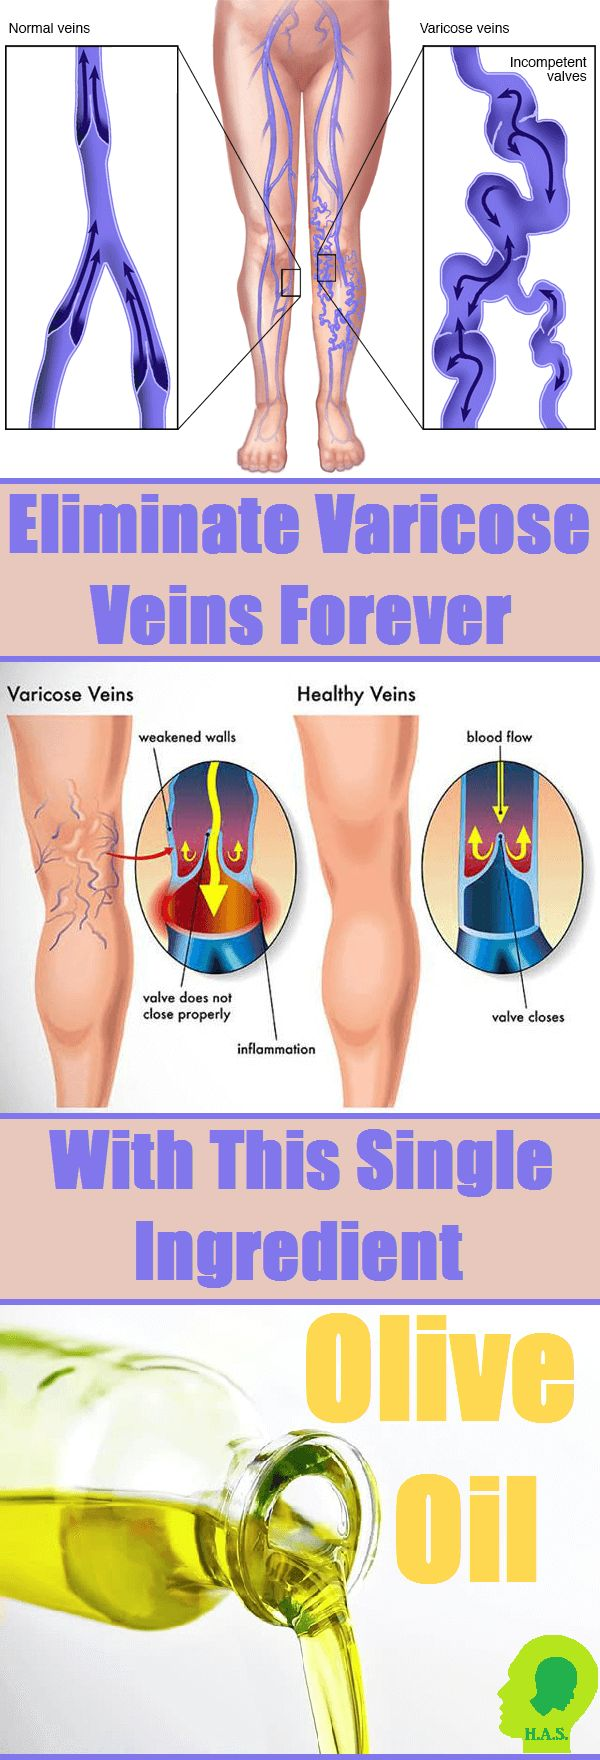 Natural Remedy Vericose Veins